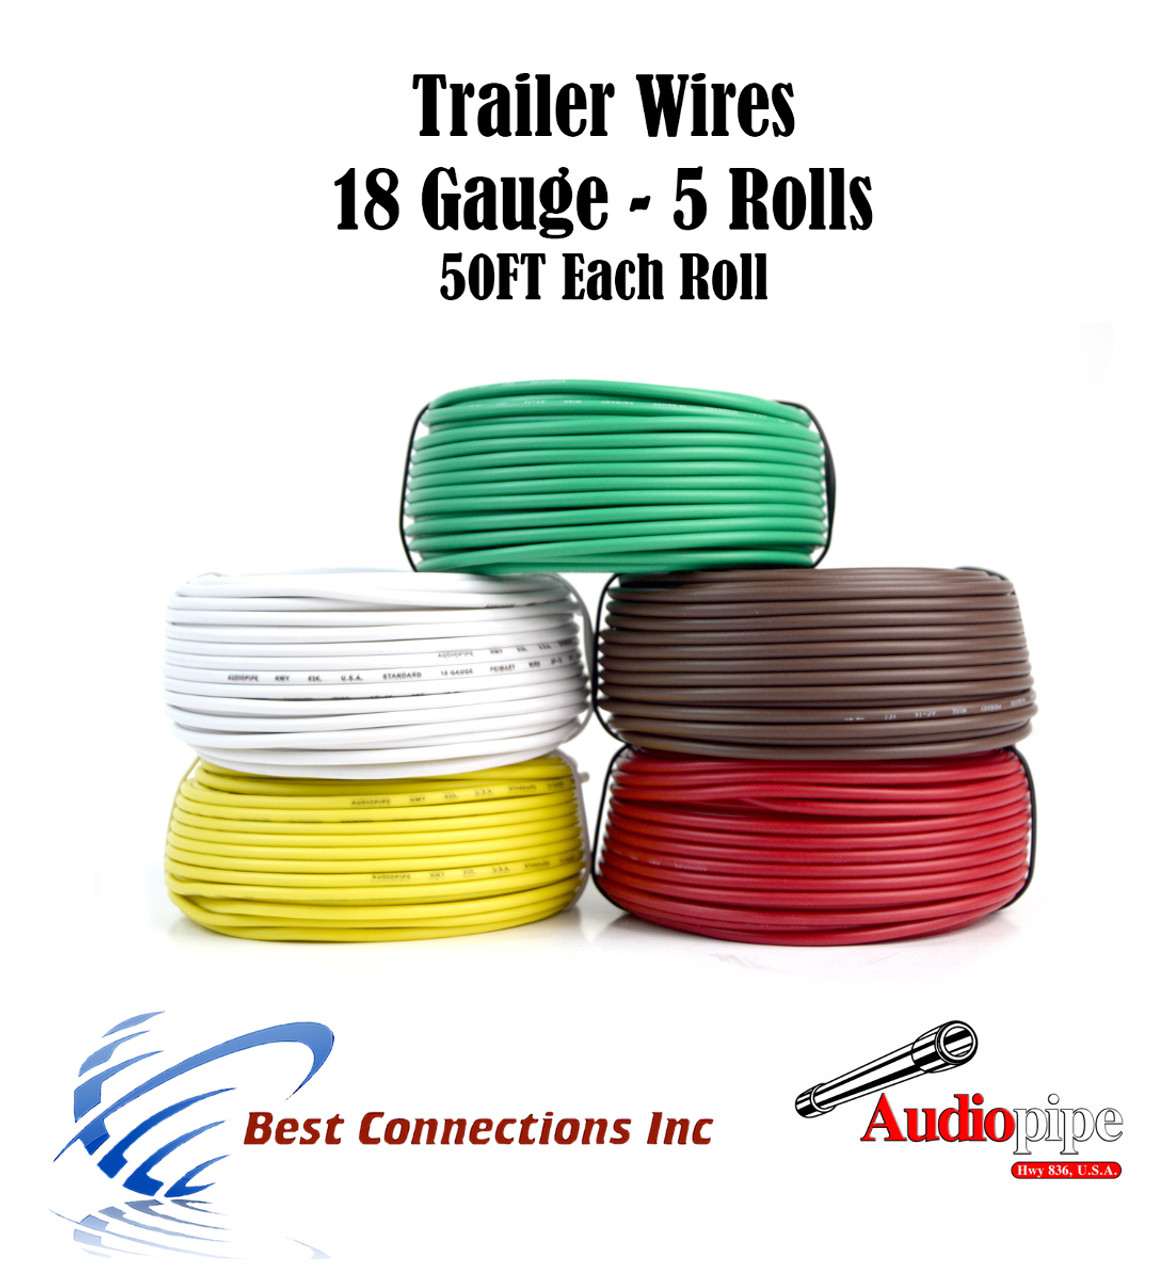 5 way trailer wire light cable for harness led 50ft each roll 18 gauge 5 colors [ 1094 x 1200 Pixel ]